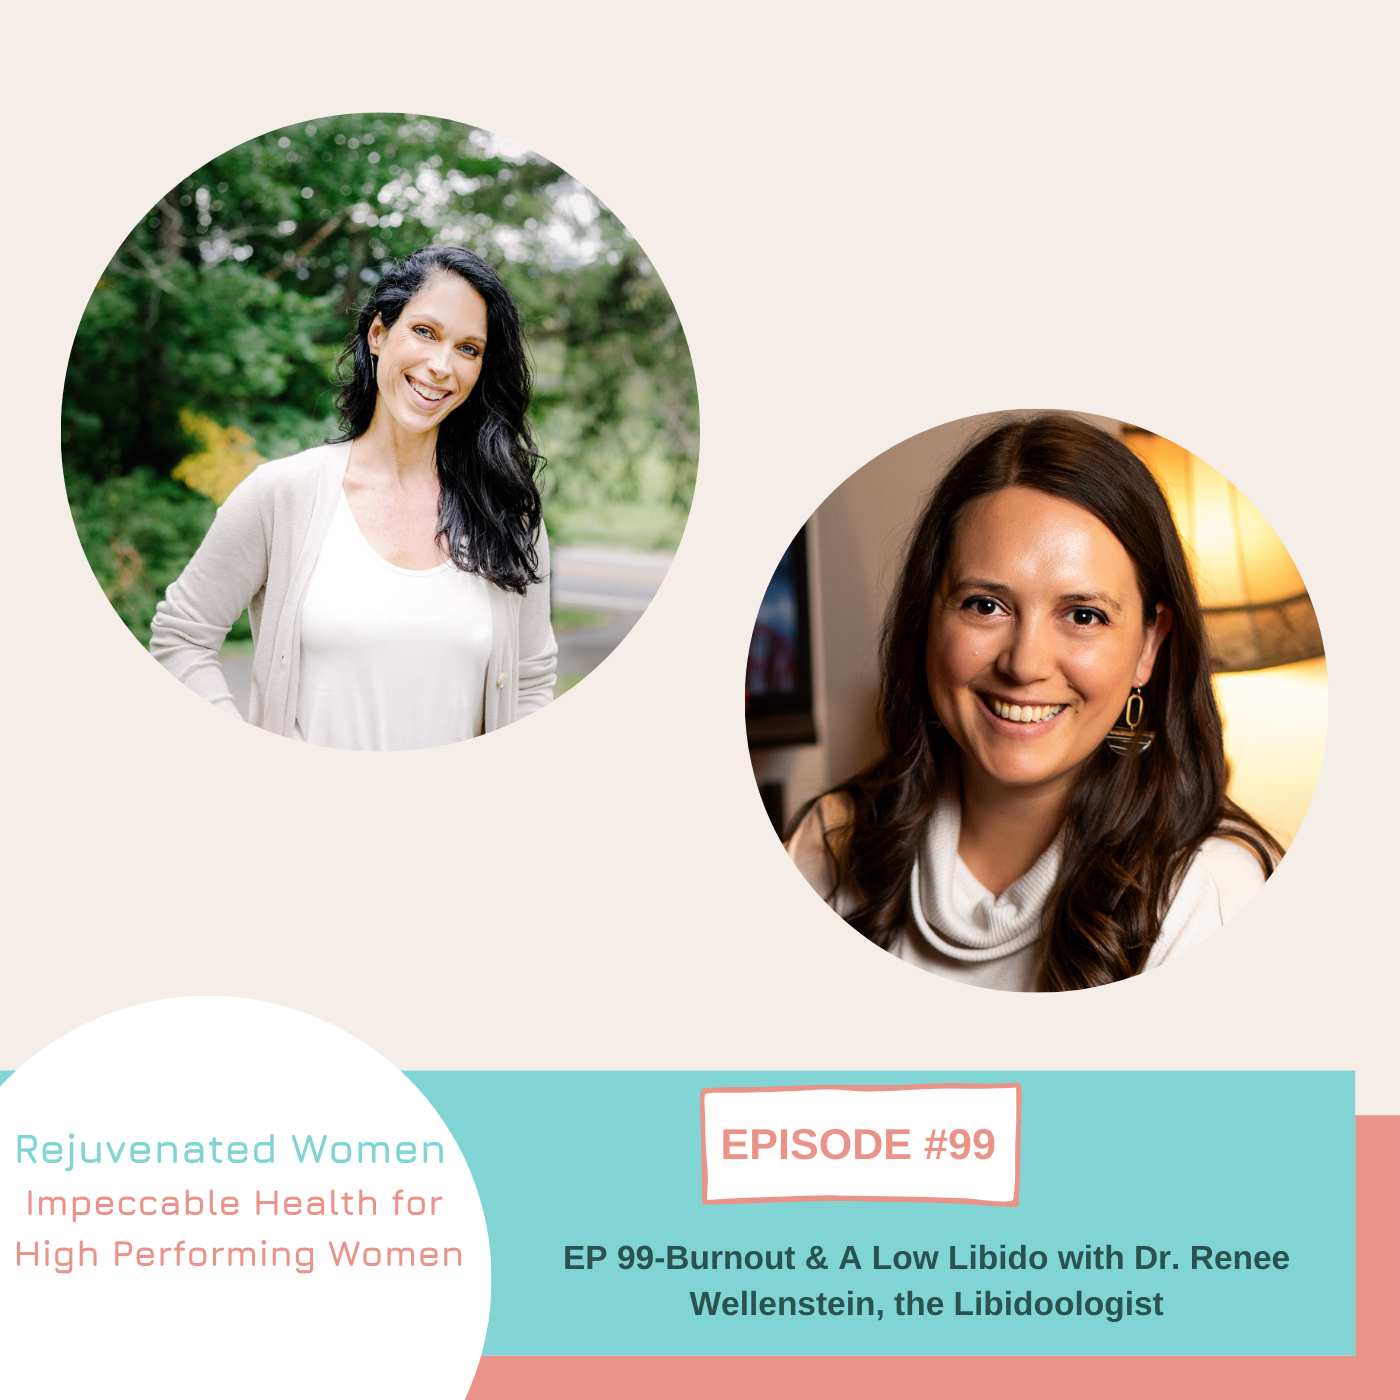 Artwork for podcast Emerge: The Health Podcast for Busy, High Performing Women